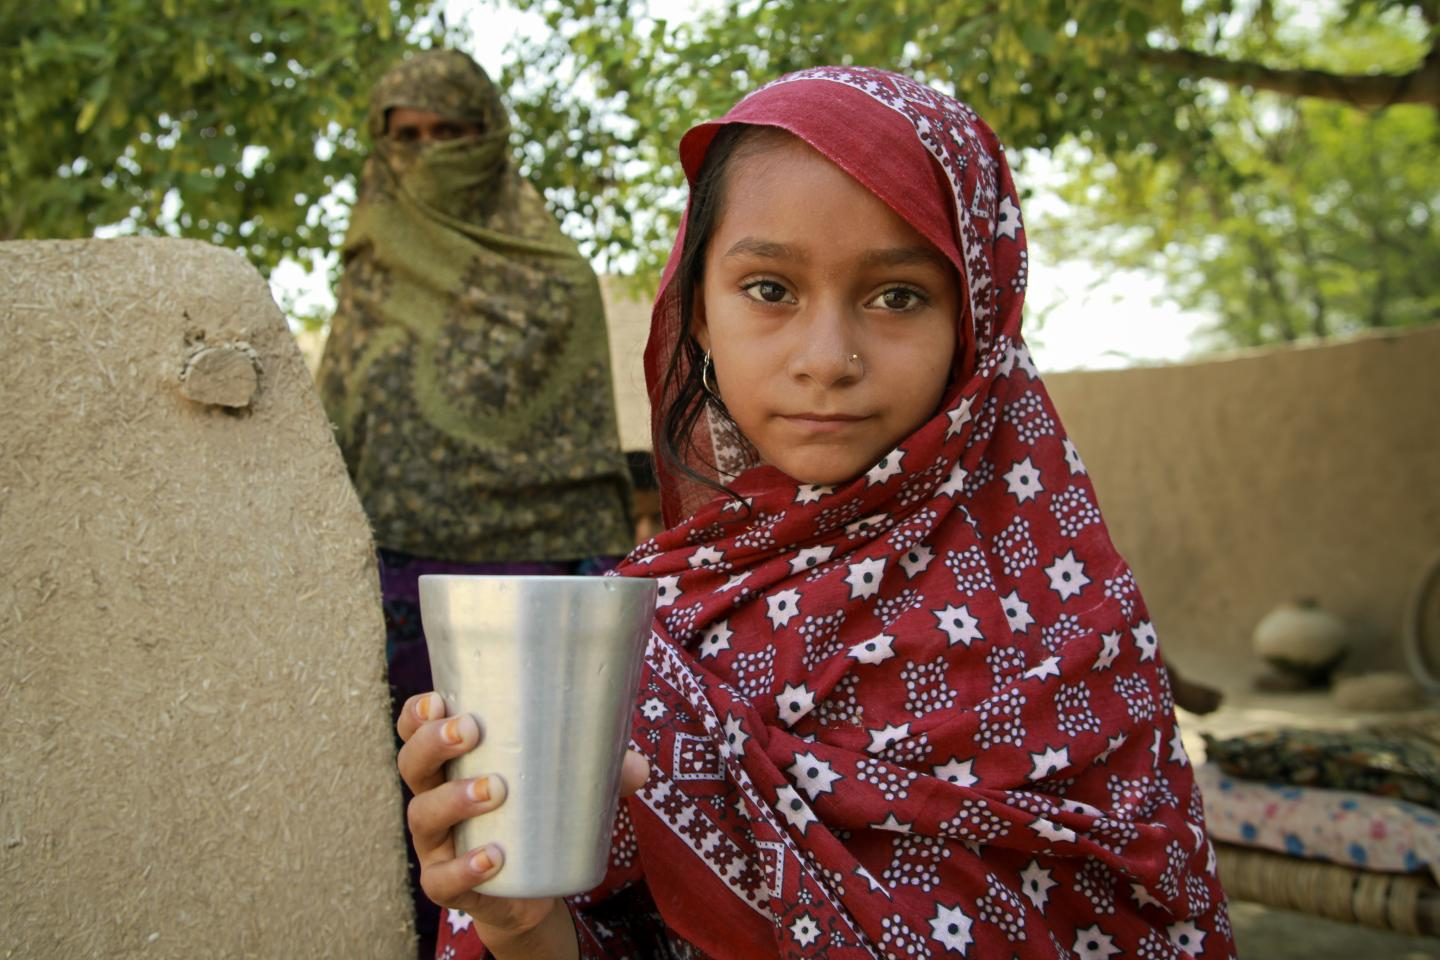 A girl holds a glass of water